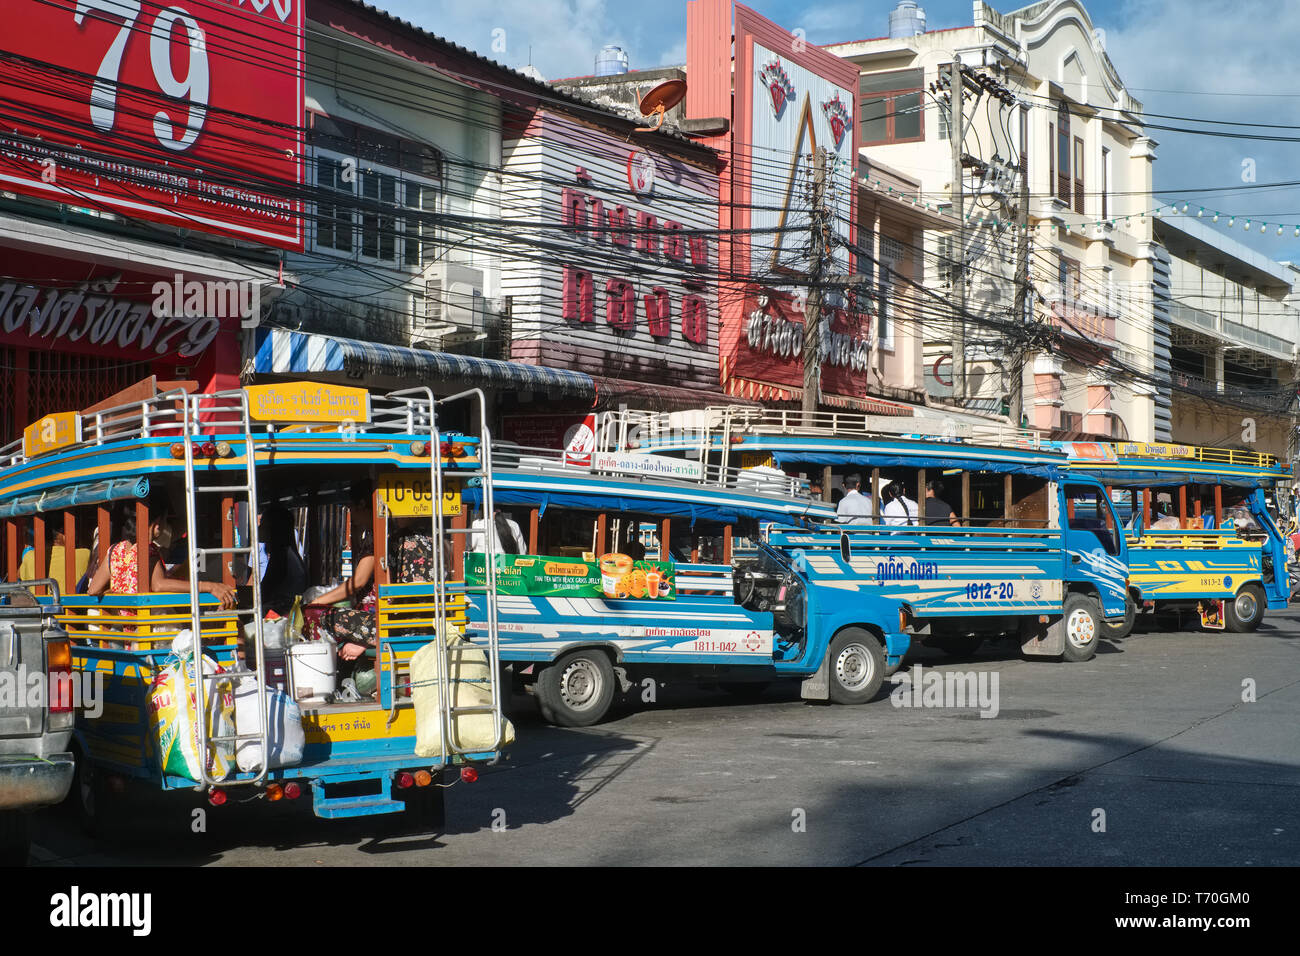 Quaint local buses called Songthaews at a bus stop in Ranong Rd., Phuket Town, Thailand, connecting the town with the island's beaches - Stock Image